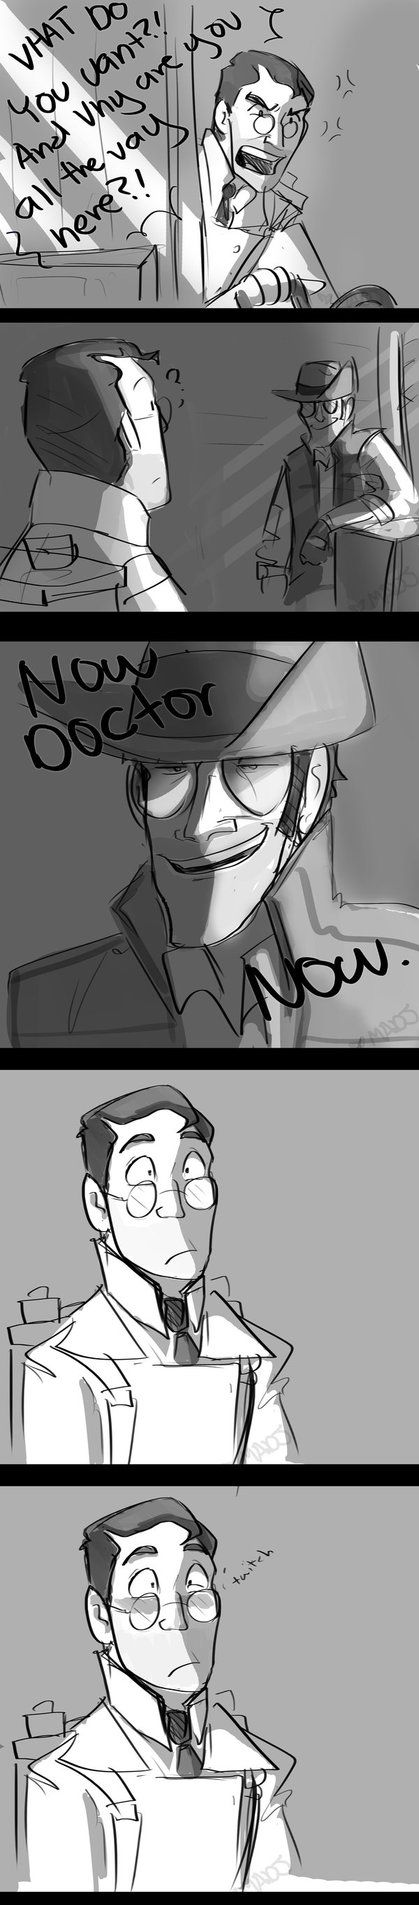 TF2-Now Doctor NOW by MadJesters1 (oh my god) Uber sniper is best uber